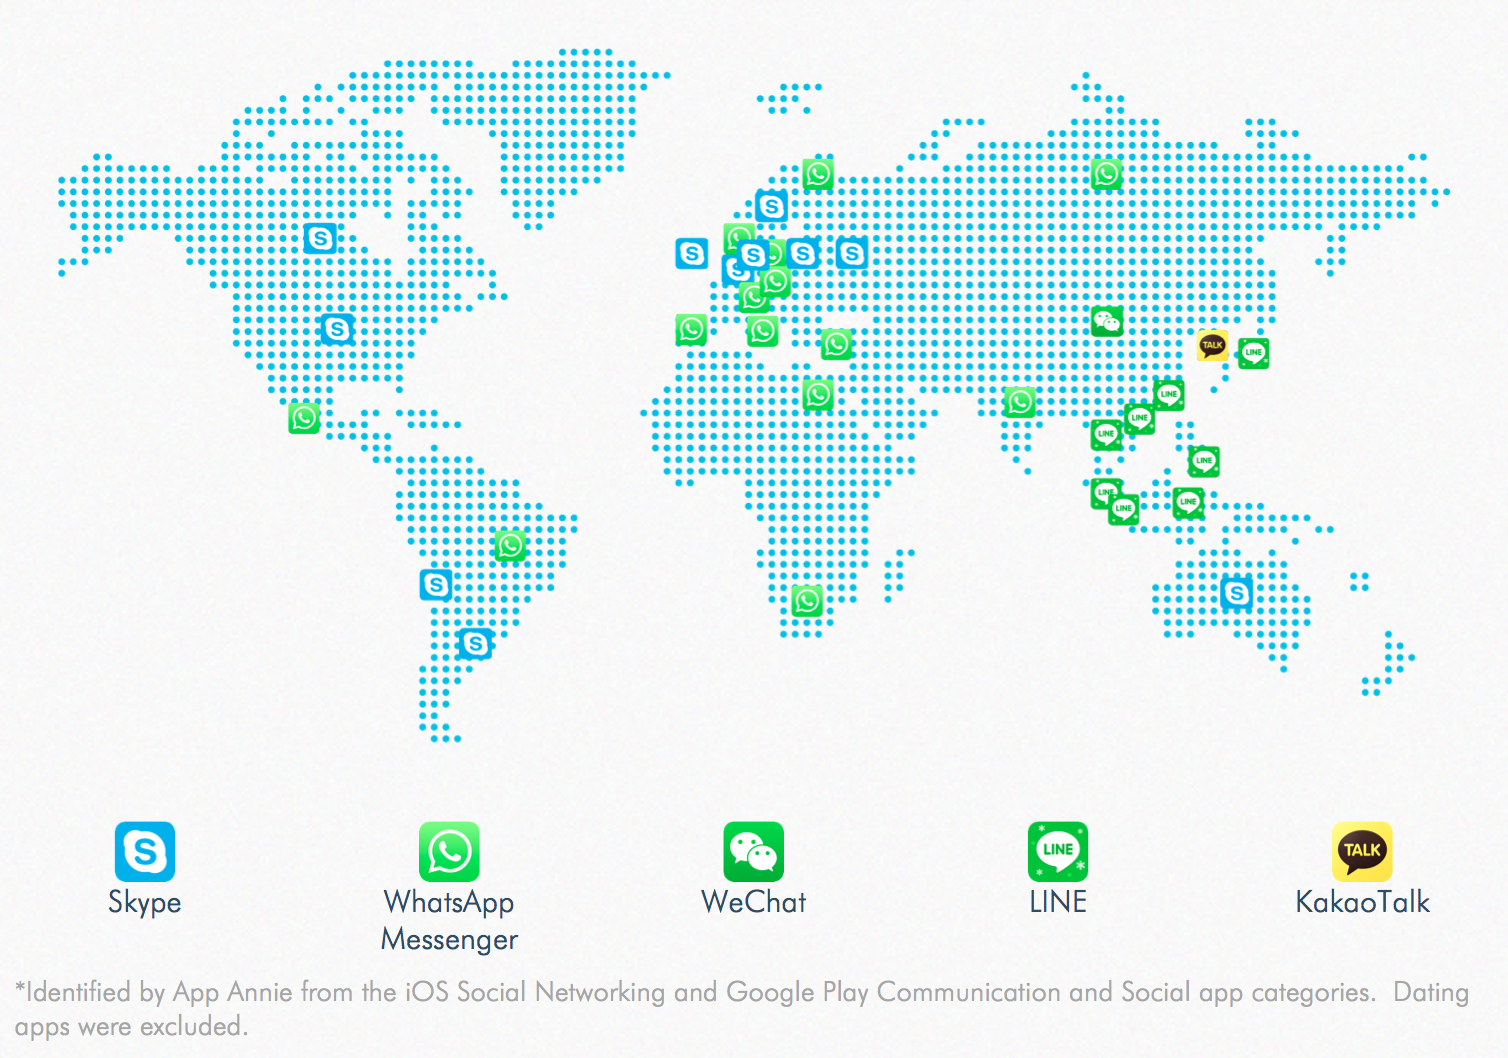 image04 - Messaging App Map